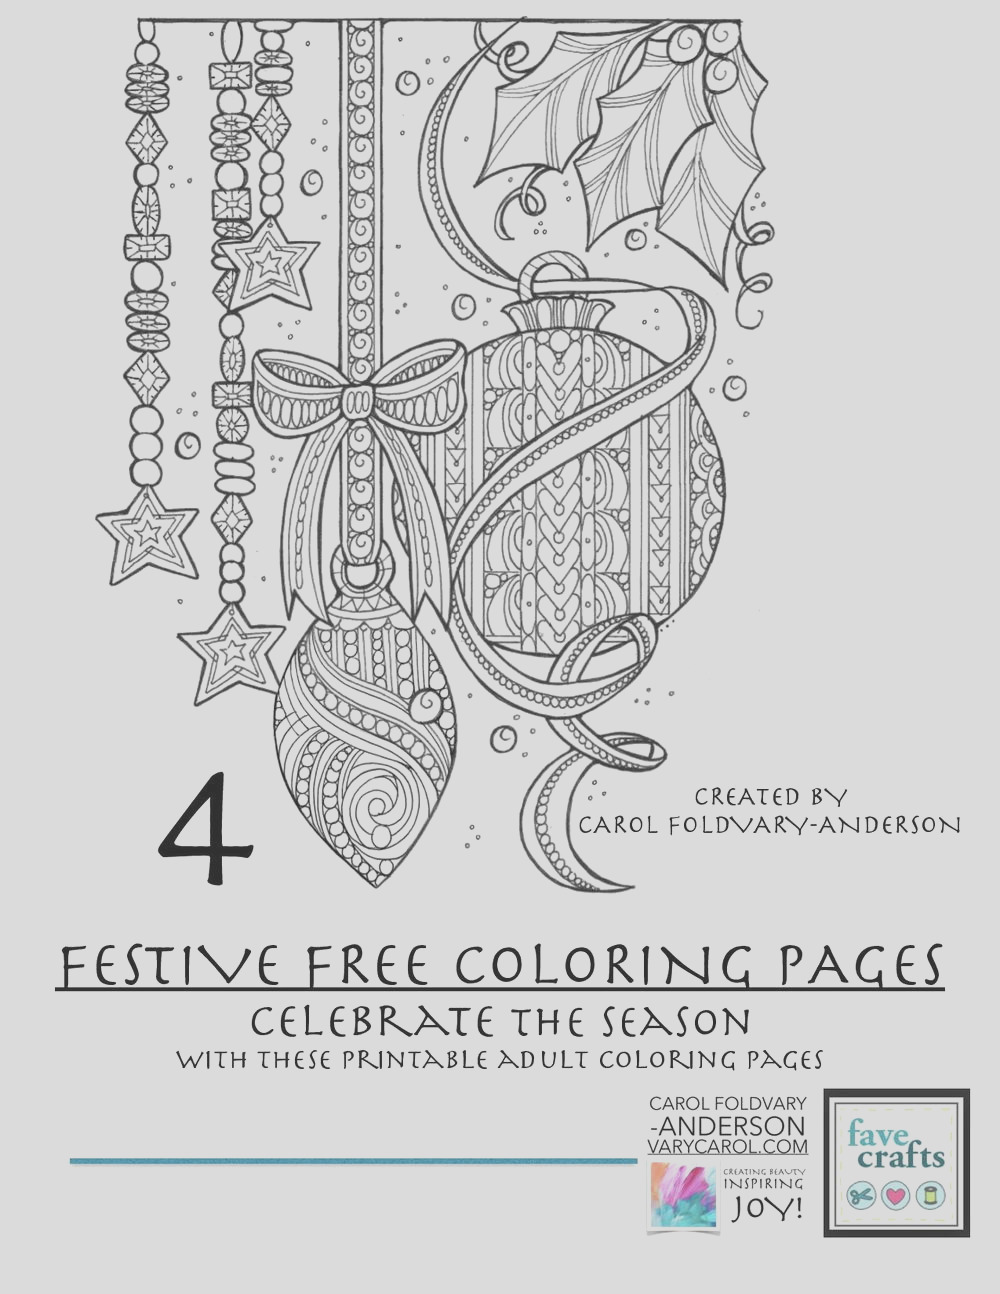 Festive Holiday Coloring Pages for Adults Free eBook